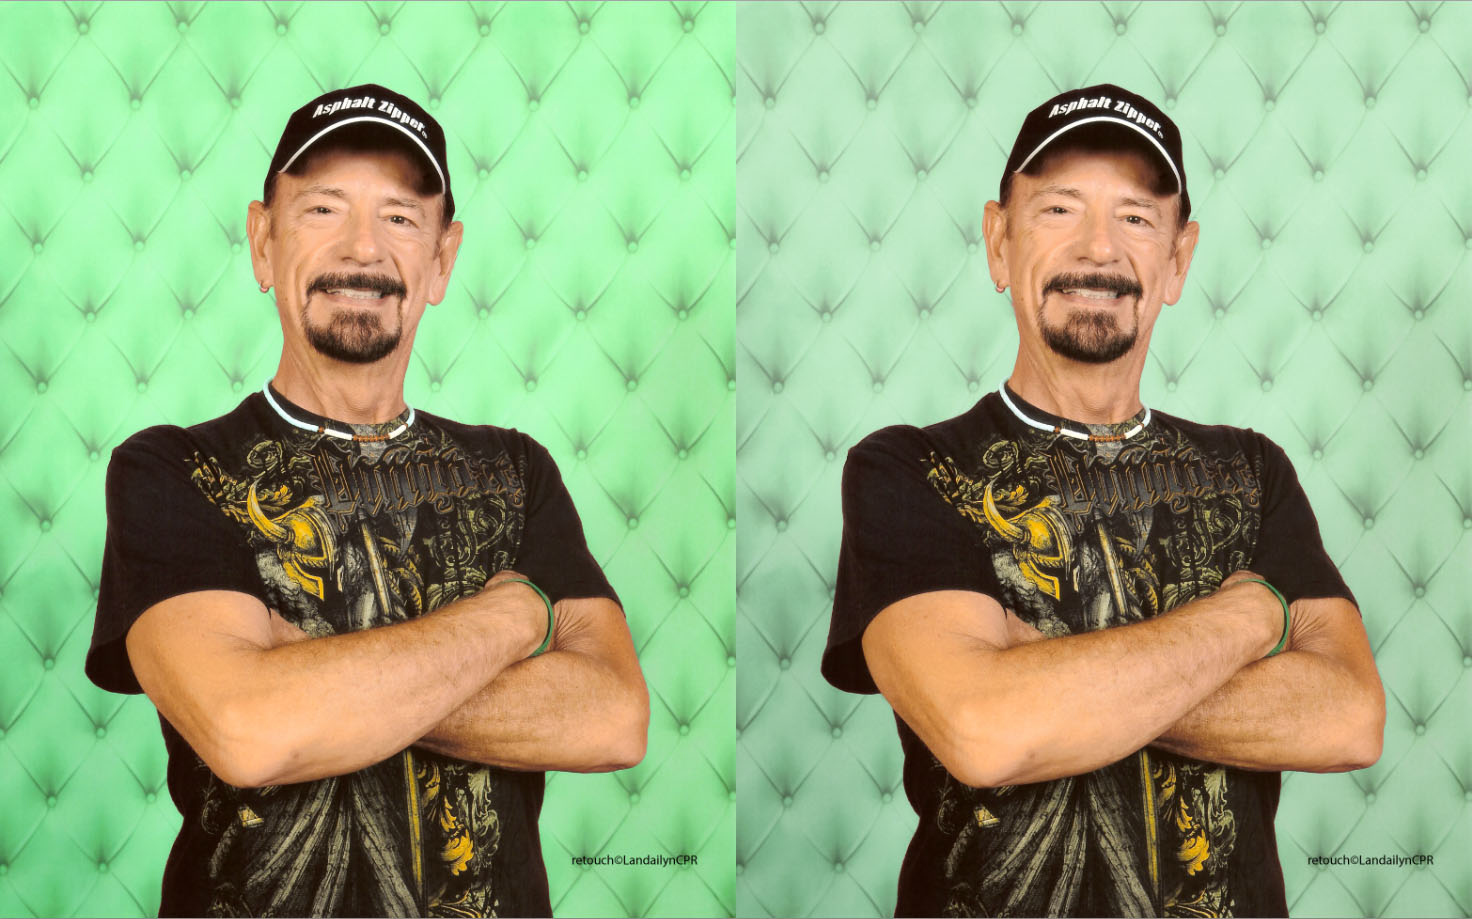 Changing The Background Colour of a Photo With Photoshop - TipSquirrel